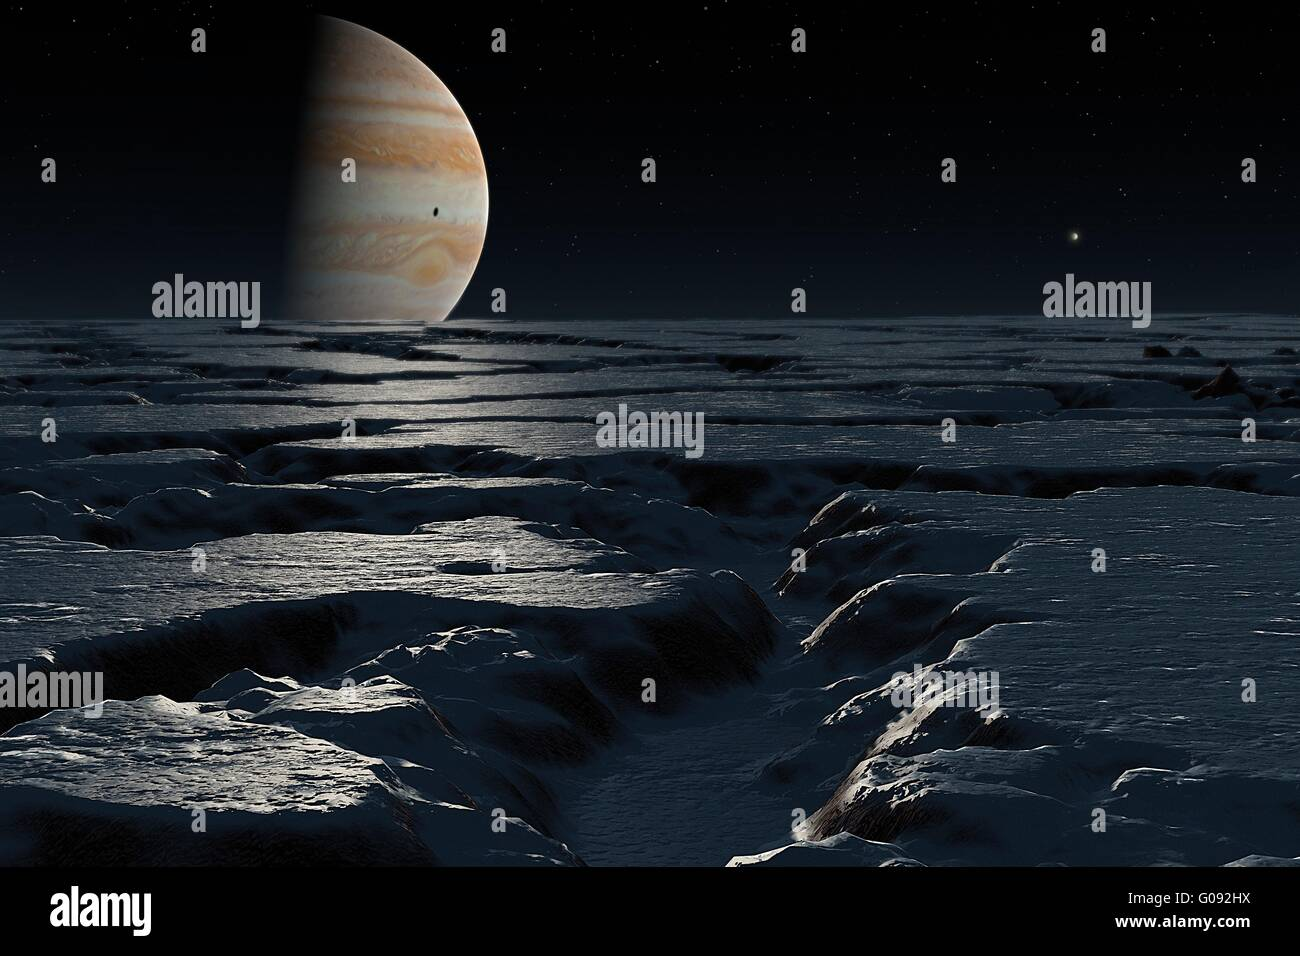 Jupiter over Europa planet Jupiter seen above horizon icy landscape Europa Jupiter is shown with a shadow on it - Stock Image